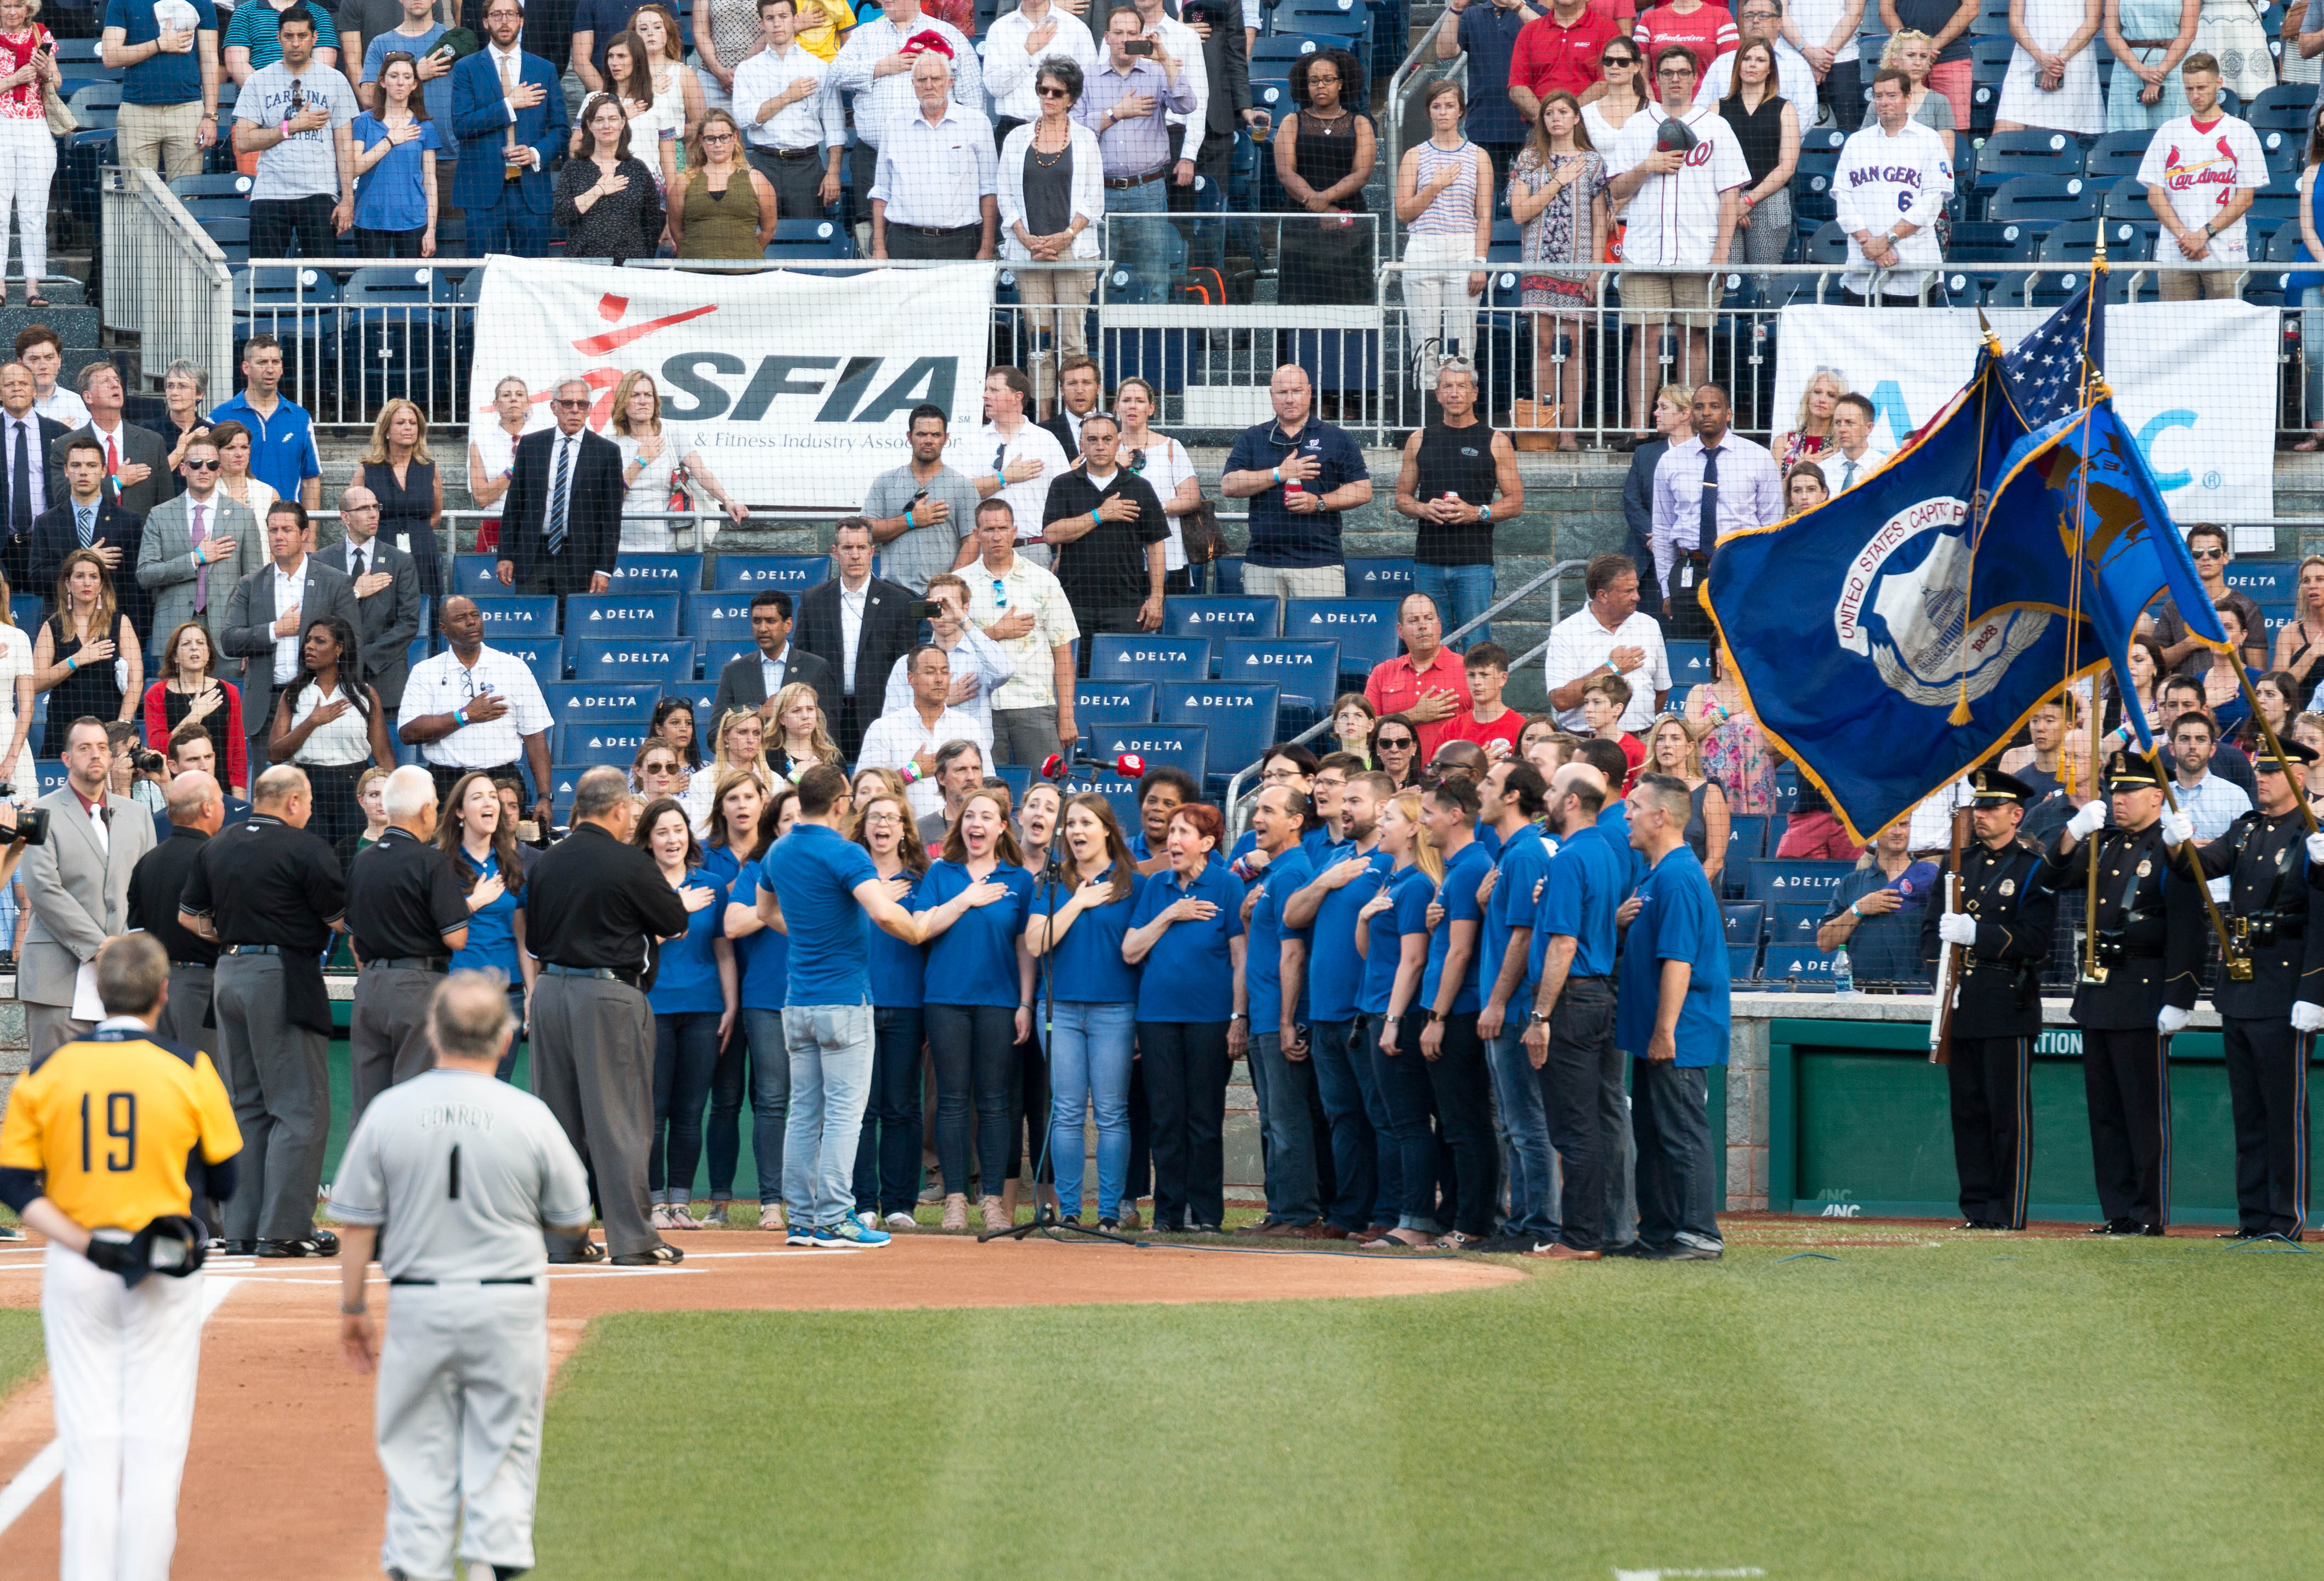 Singing of the national anthem before the start of the Congressional Baseball Game on Thursday. (Paul Huang)